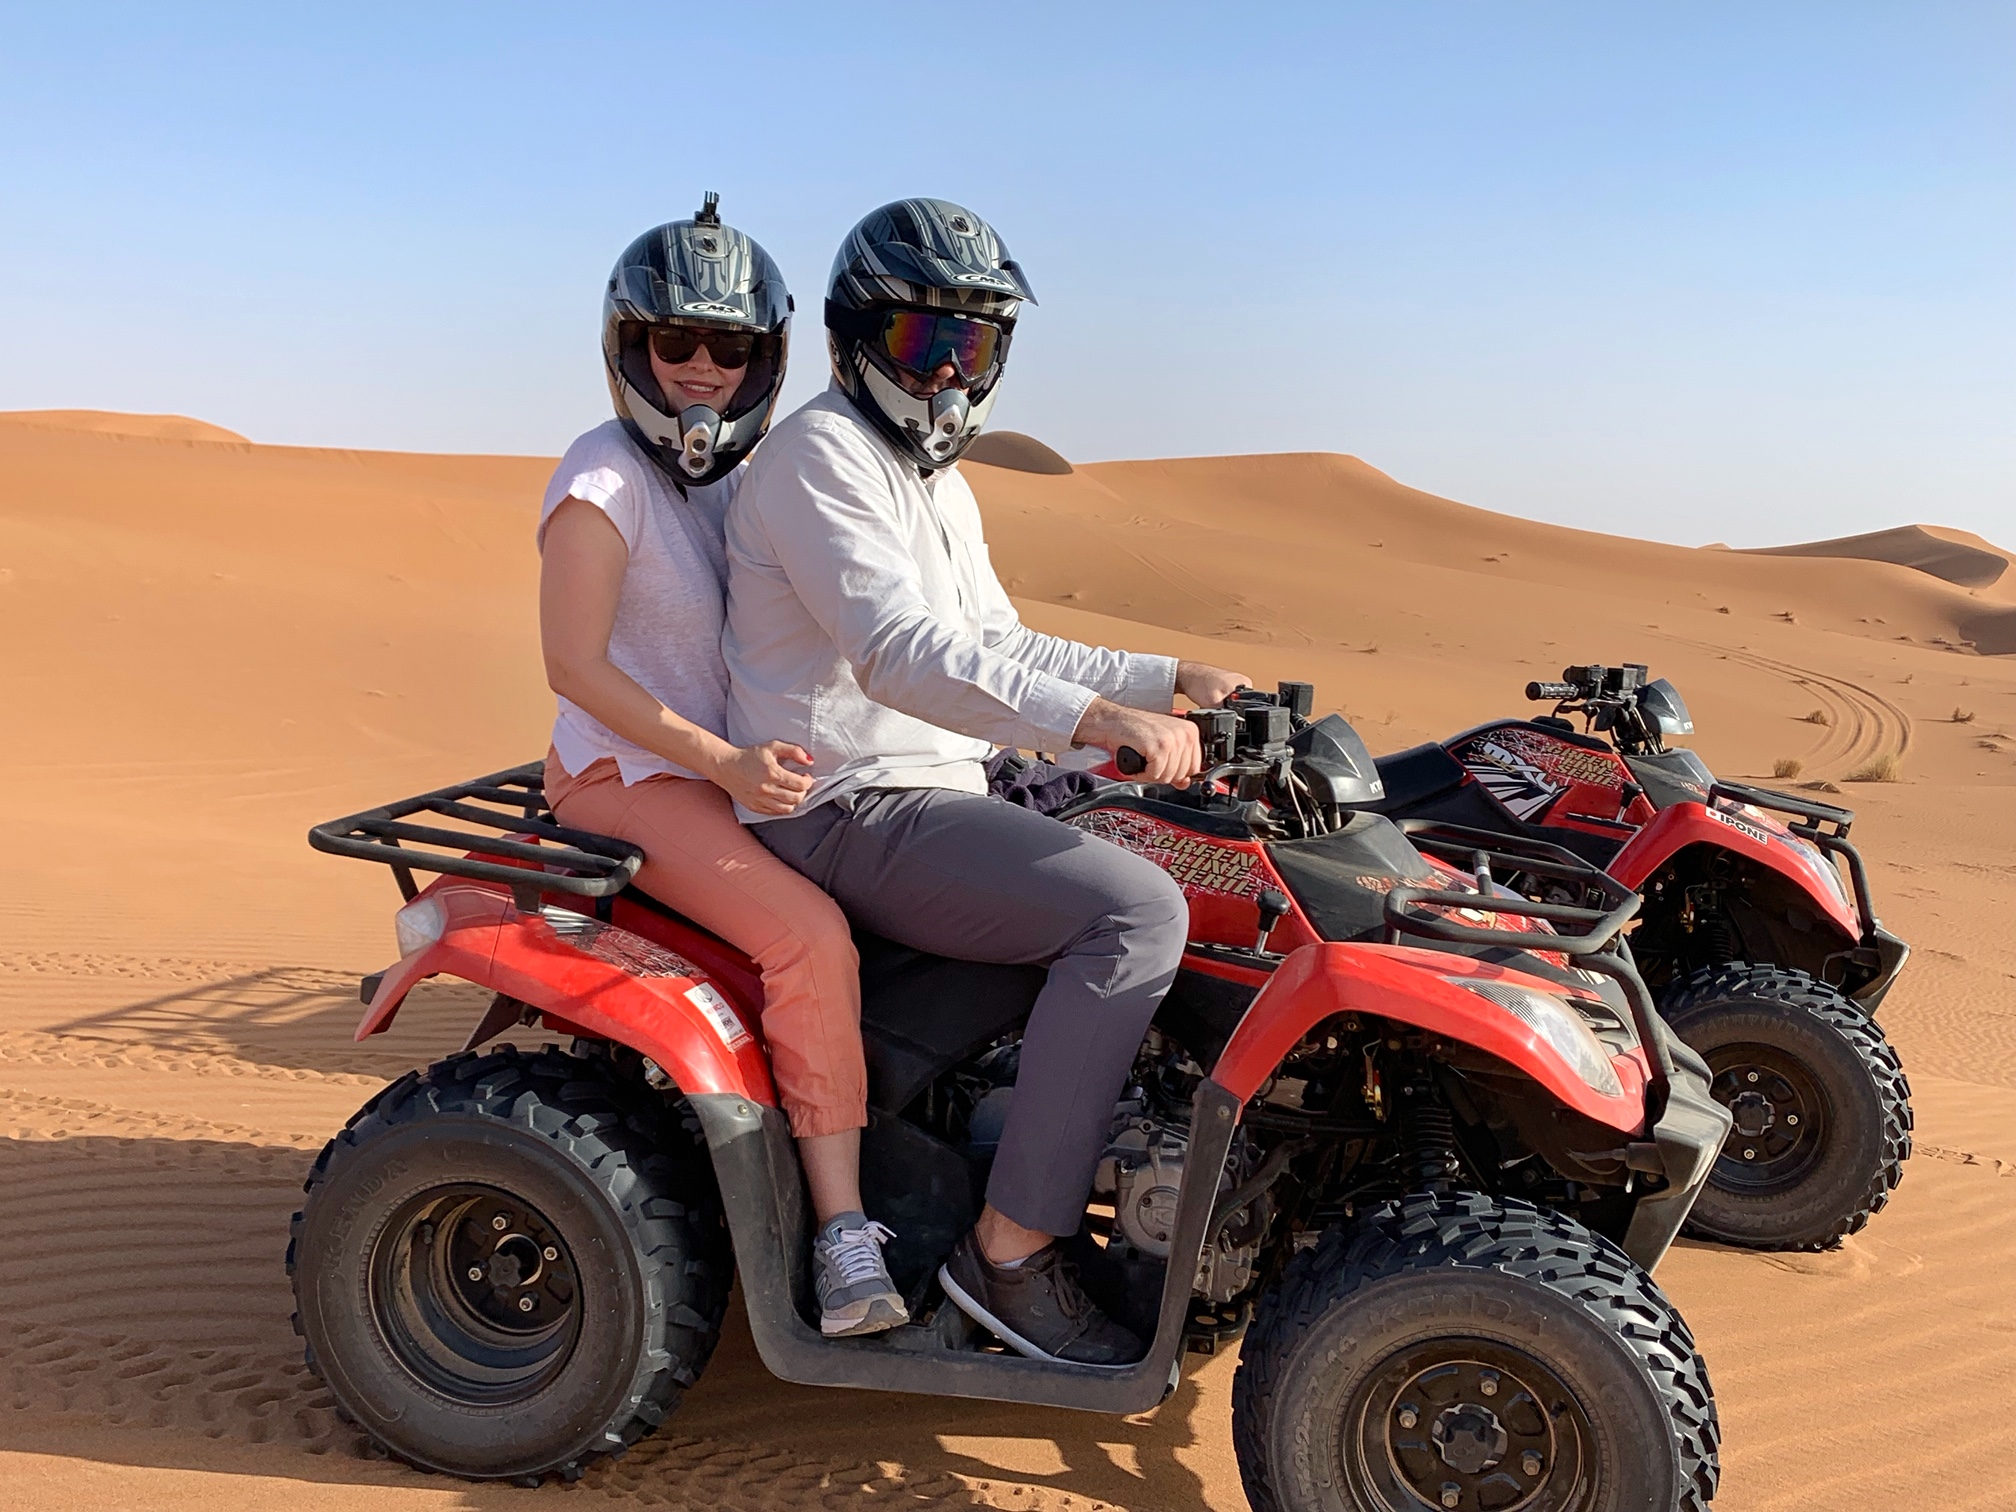 ATV RIDE, SAHARA DESERT, MOROCCO, THE-ALYST.COM